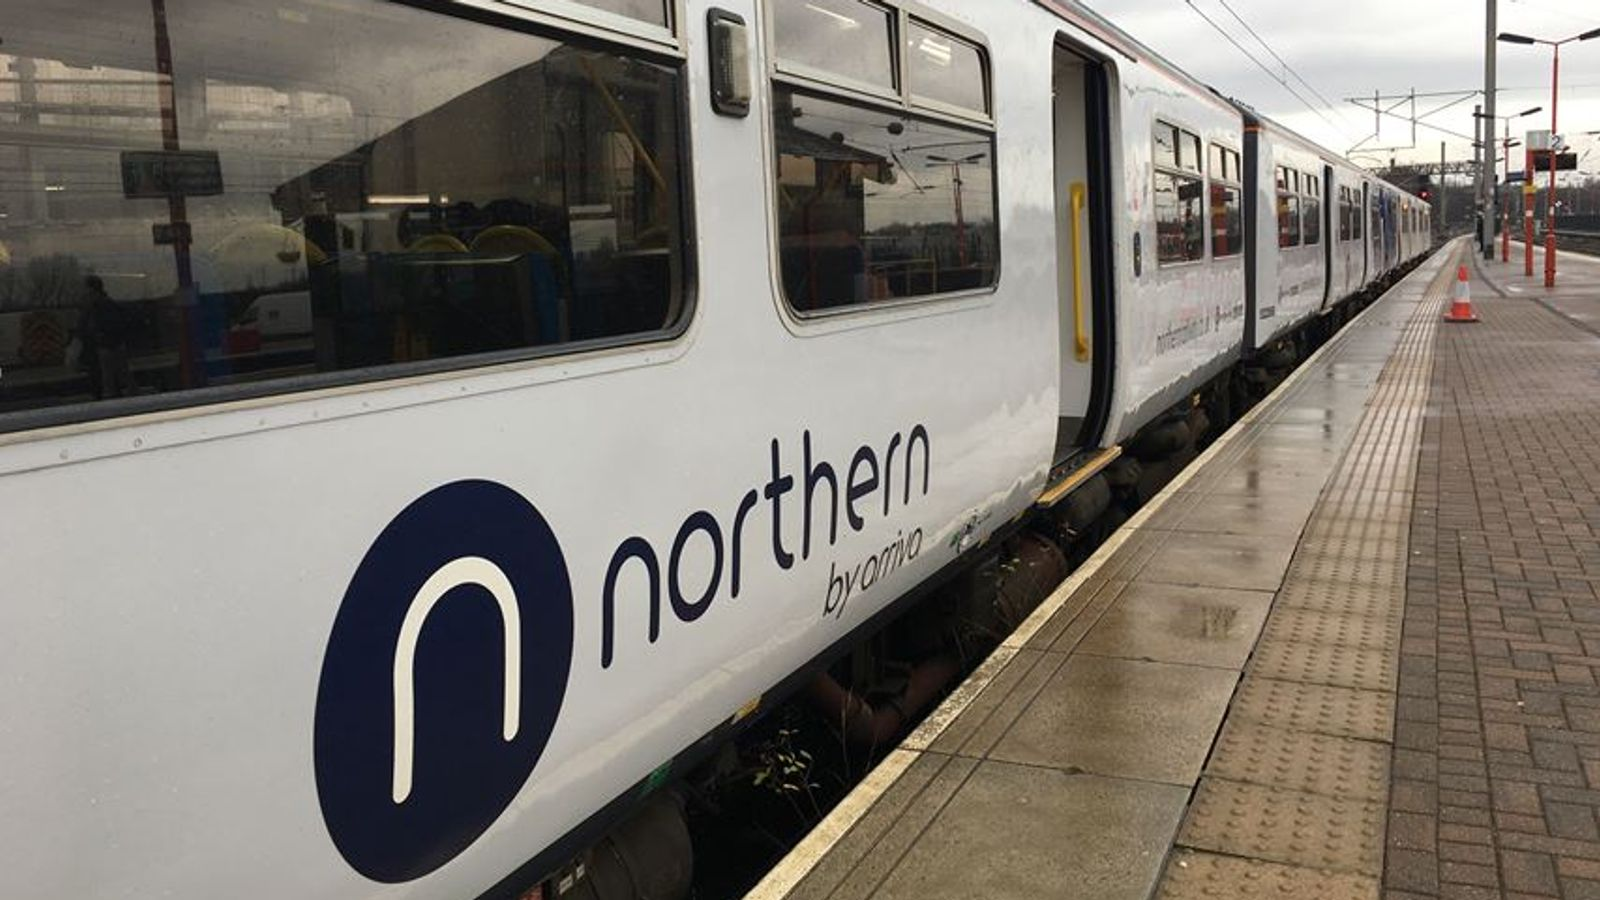 No more delays for Northern rail franchise decision